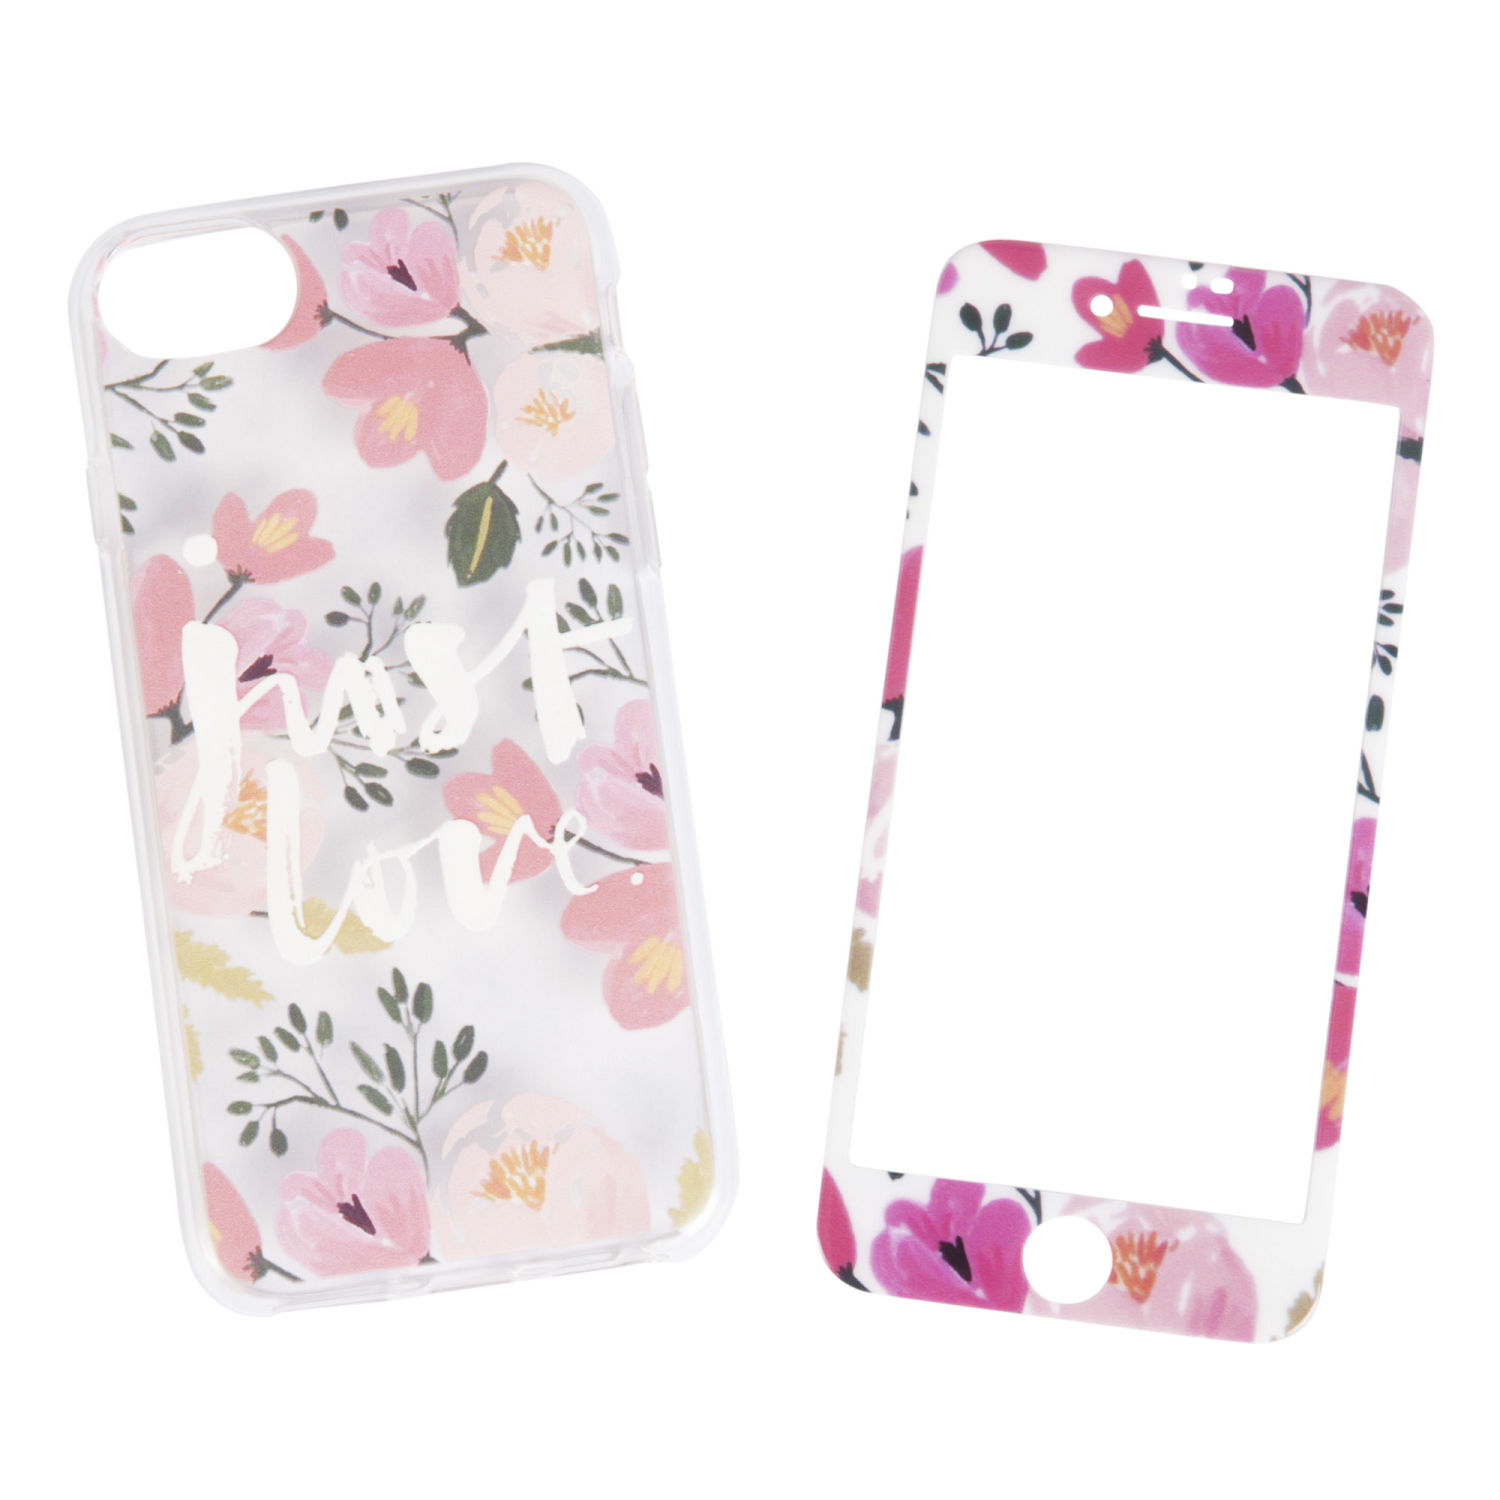 iphone 6 7 8 case decorative screen protection film 1500 16 35 181542 2